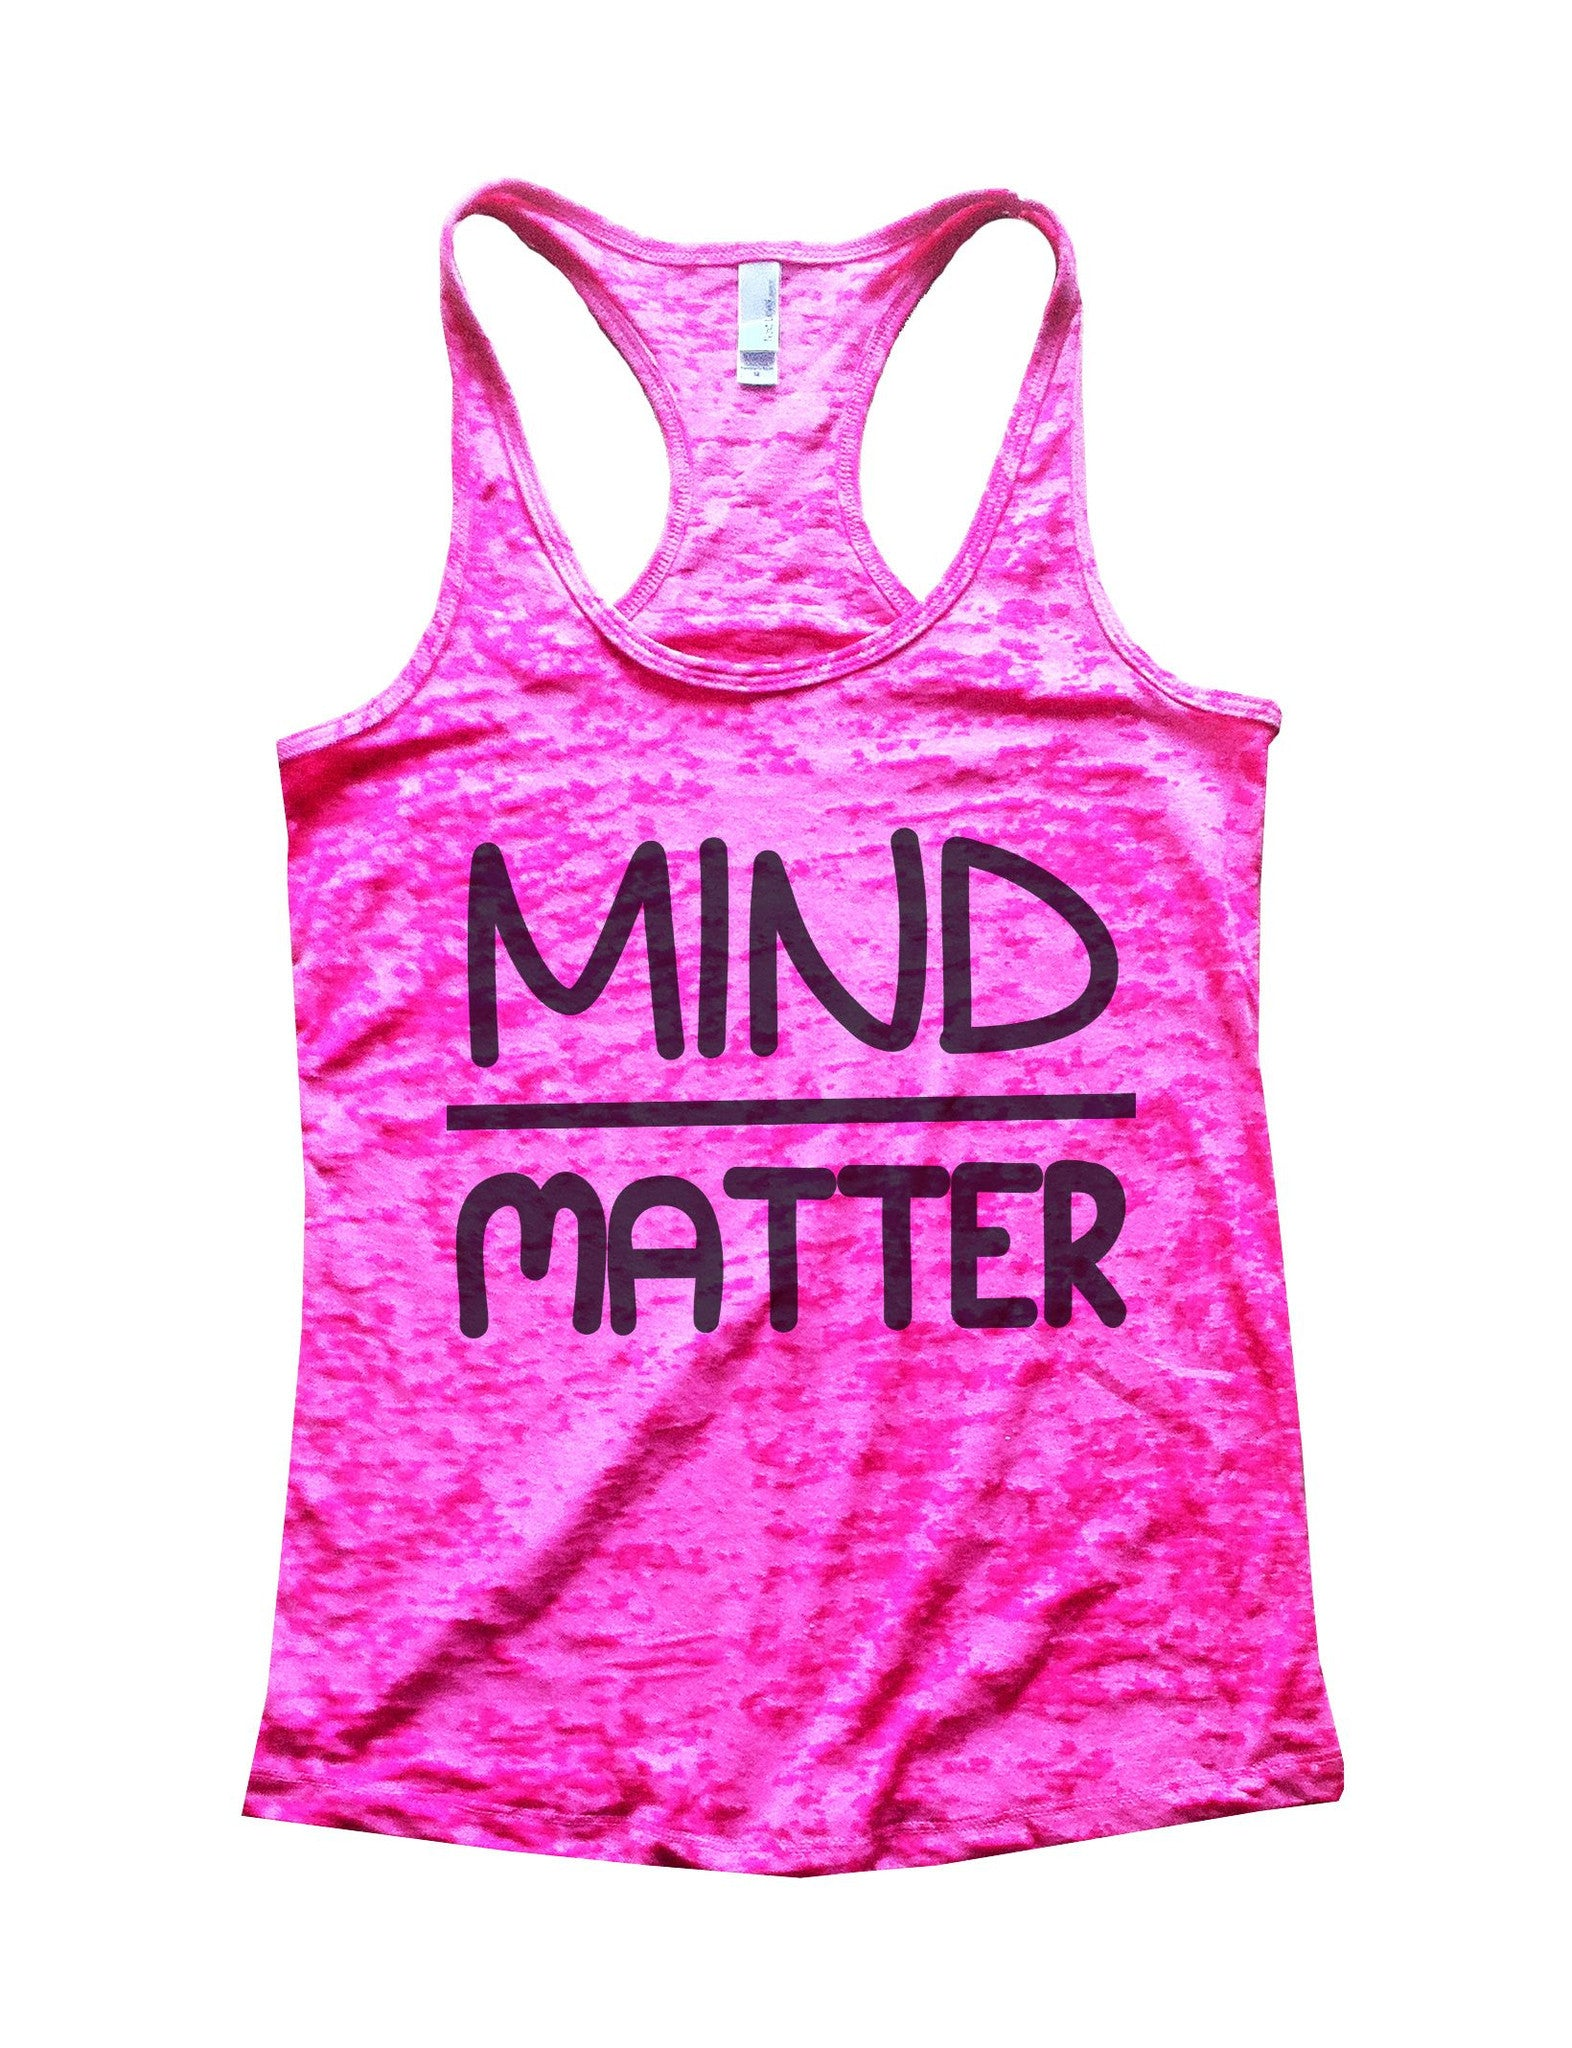 Mind Matter Burnout Tank Top By BurnoutTankTops.com - 655 - Funny Shirts Tank Tops Burnouts and Triblends  - 3